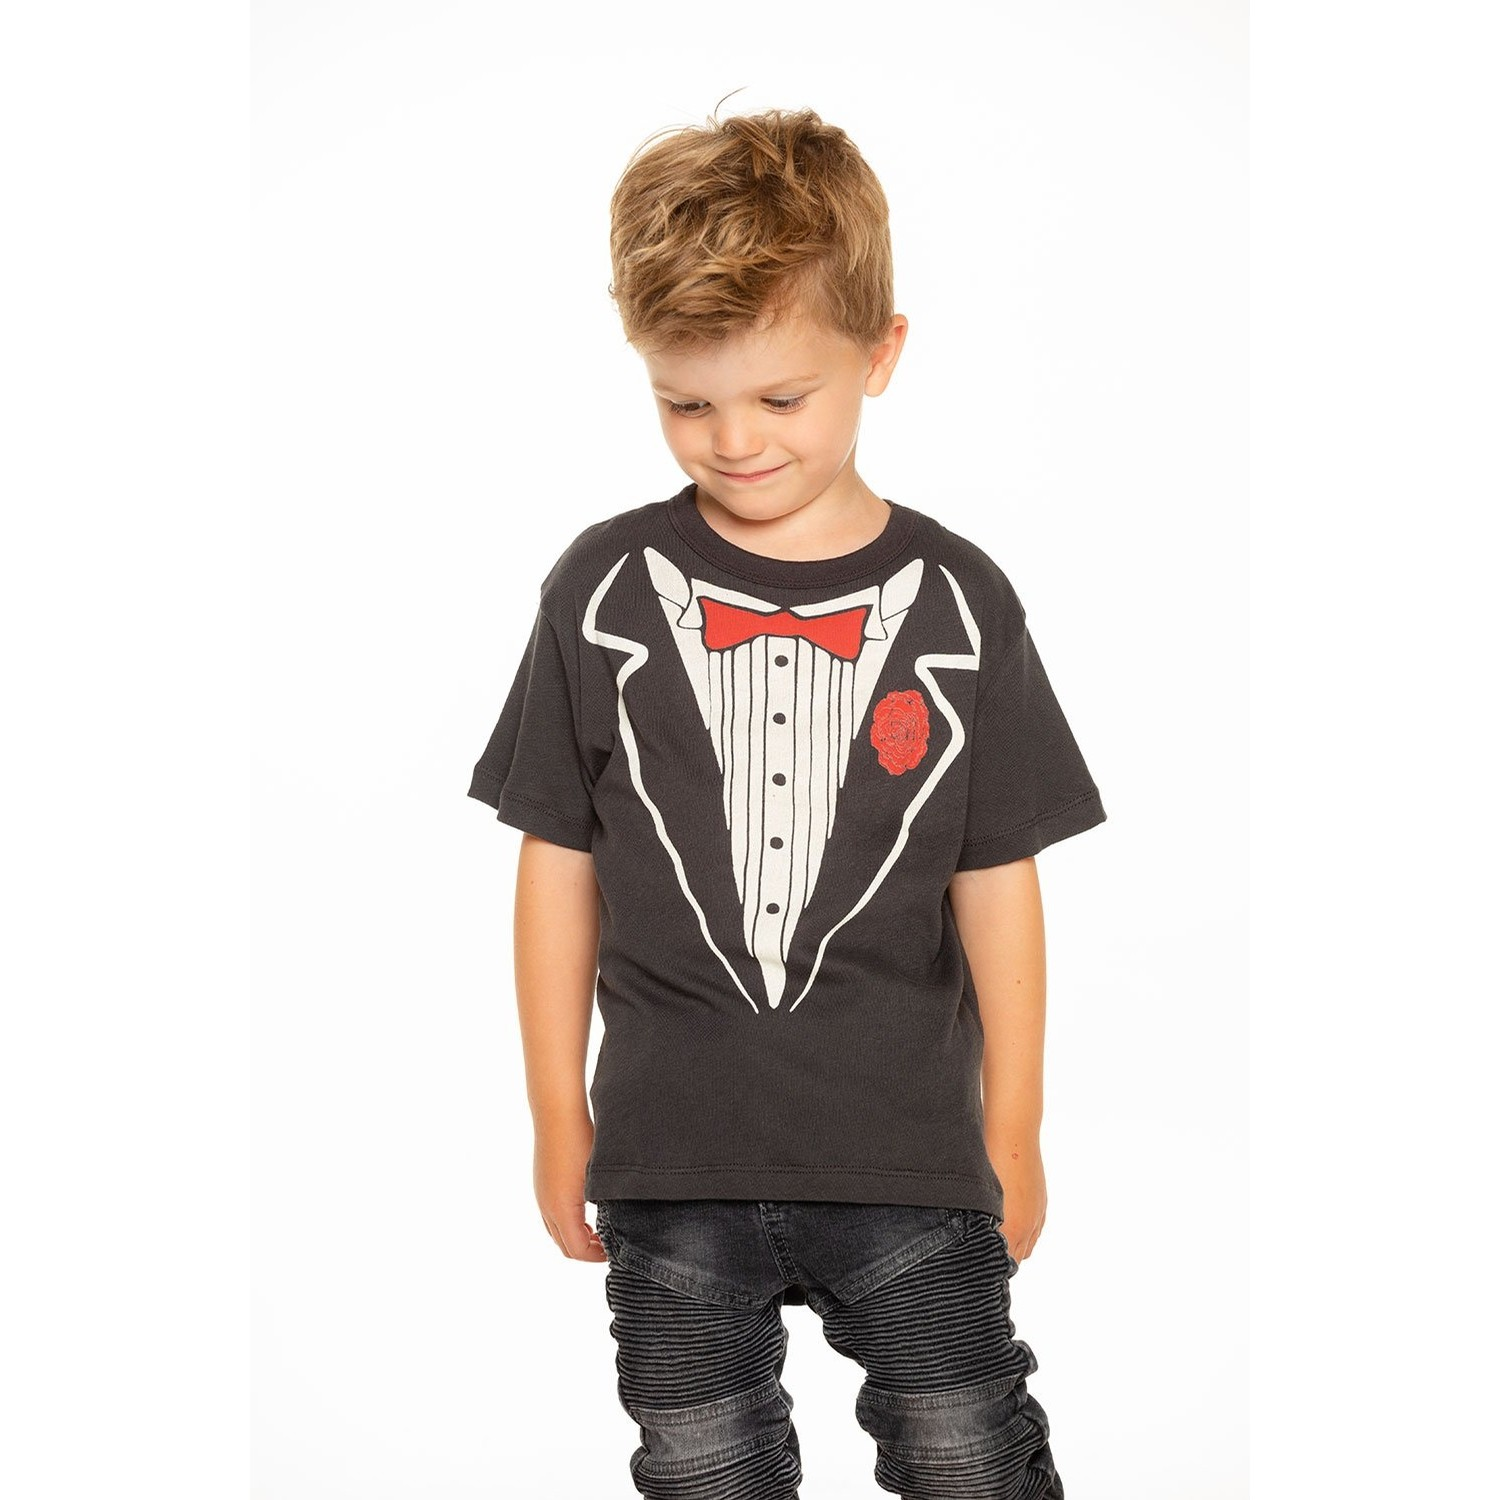 Boys Gauzy Cotton Short Sleeve Tee (Vintage Black)